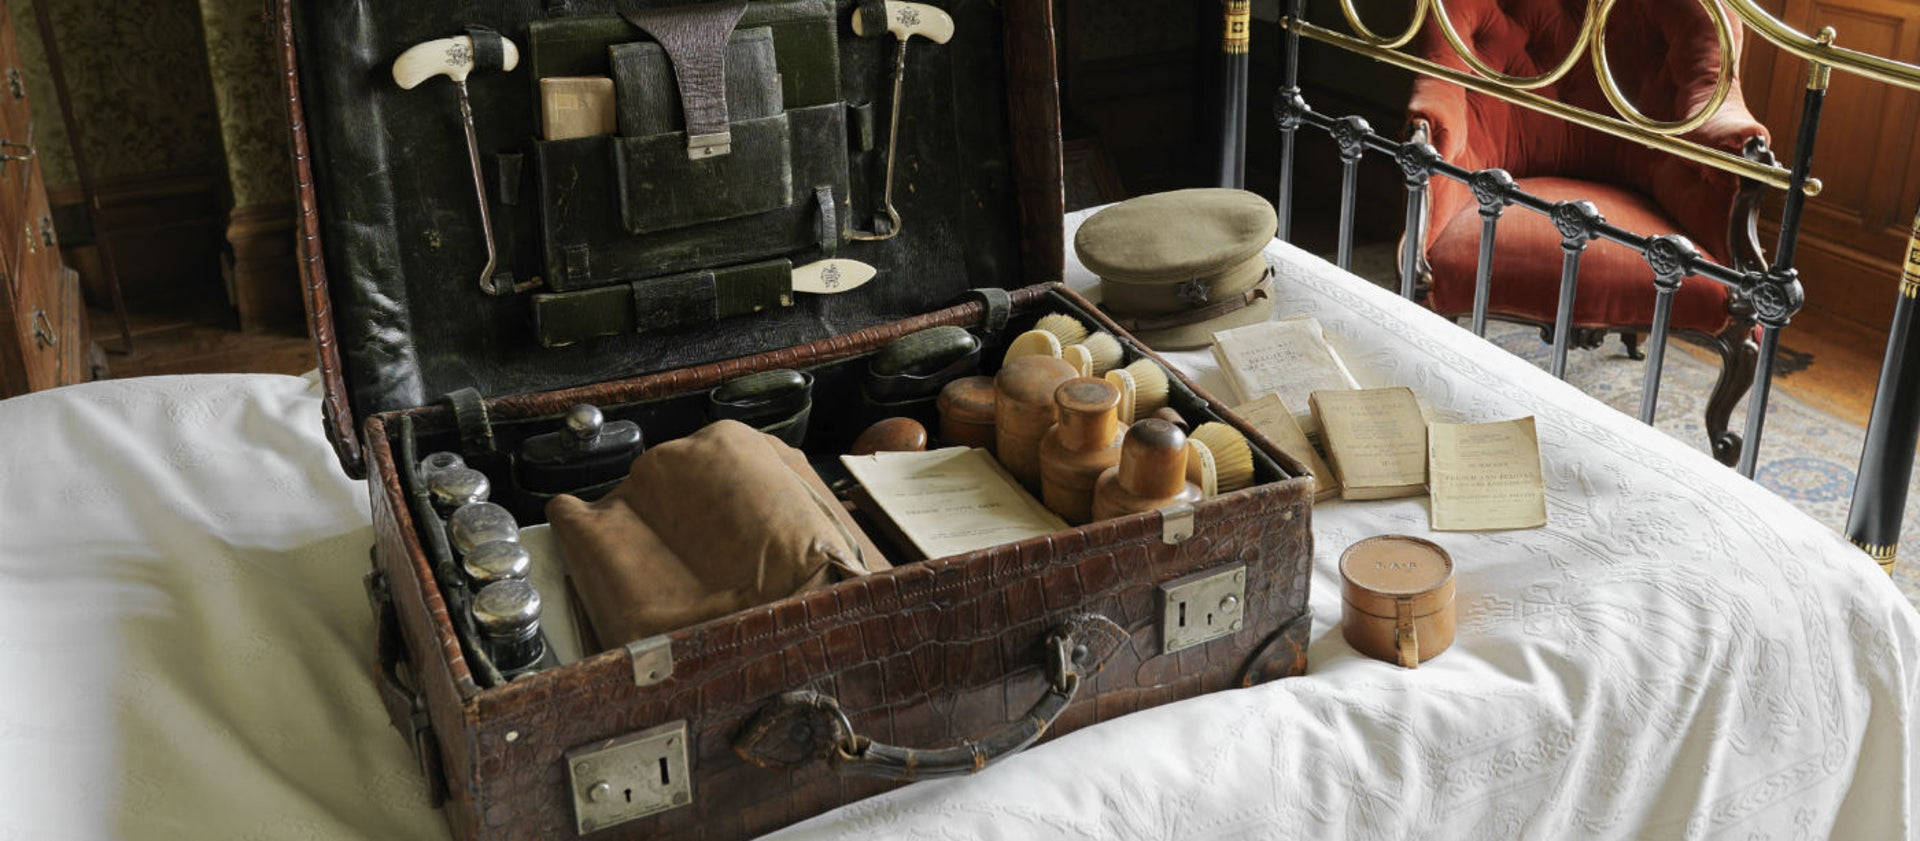 2a59c75b4 The First World War at Lanhydrock | National Trust